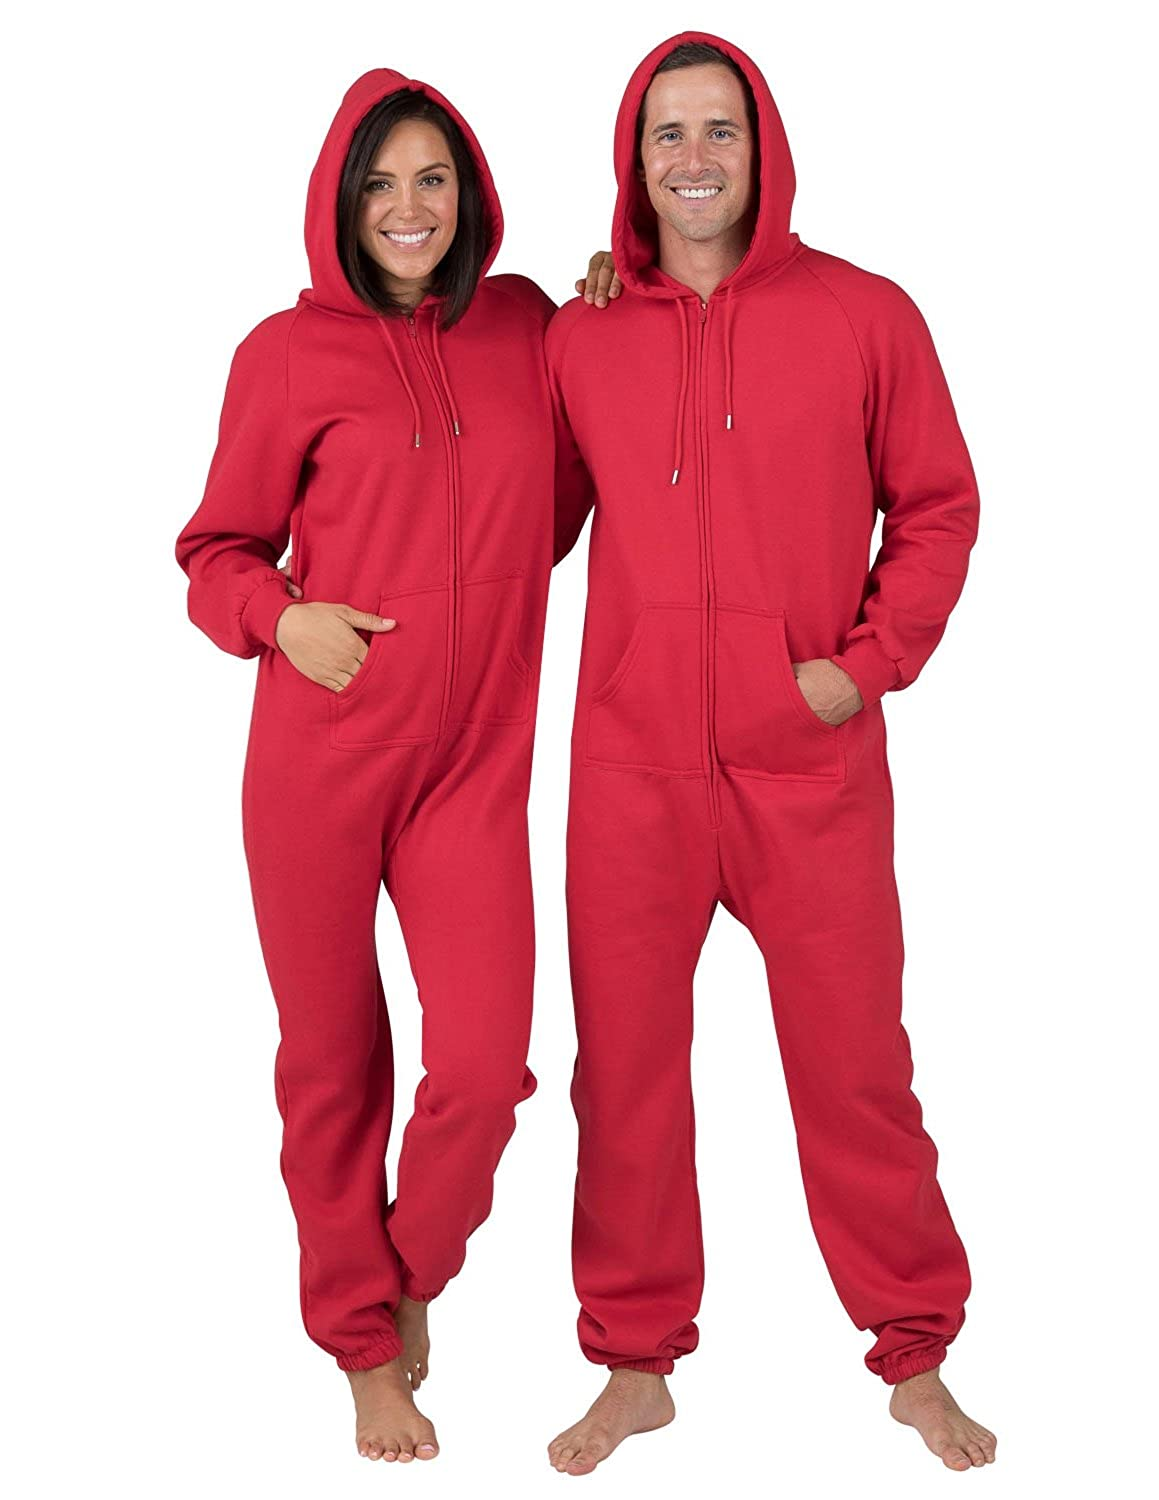 3db449a86 Amazon.com  Joggies - Red Adult Footless Hoodie Onesie - Extra Large ...